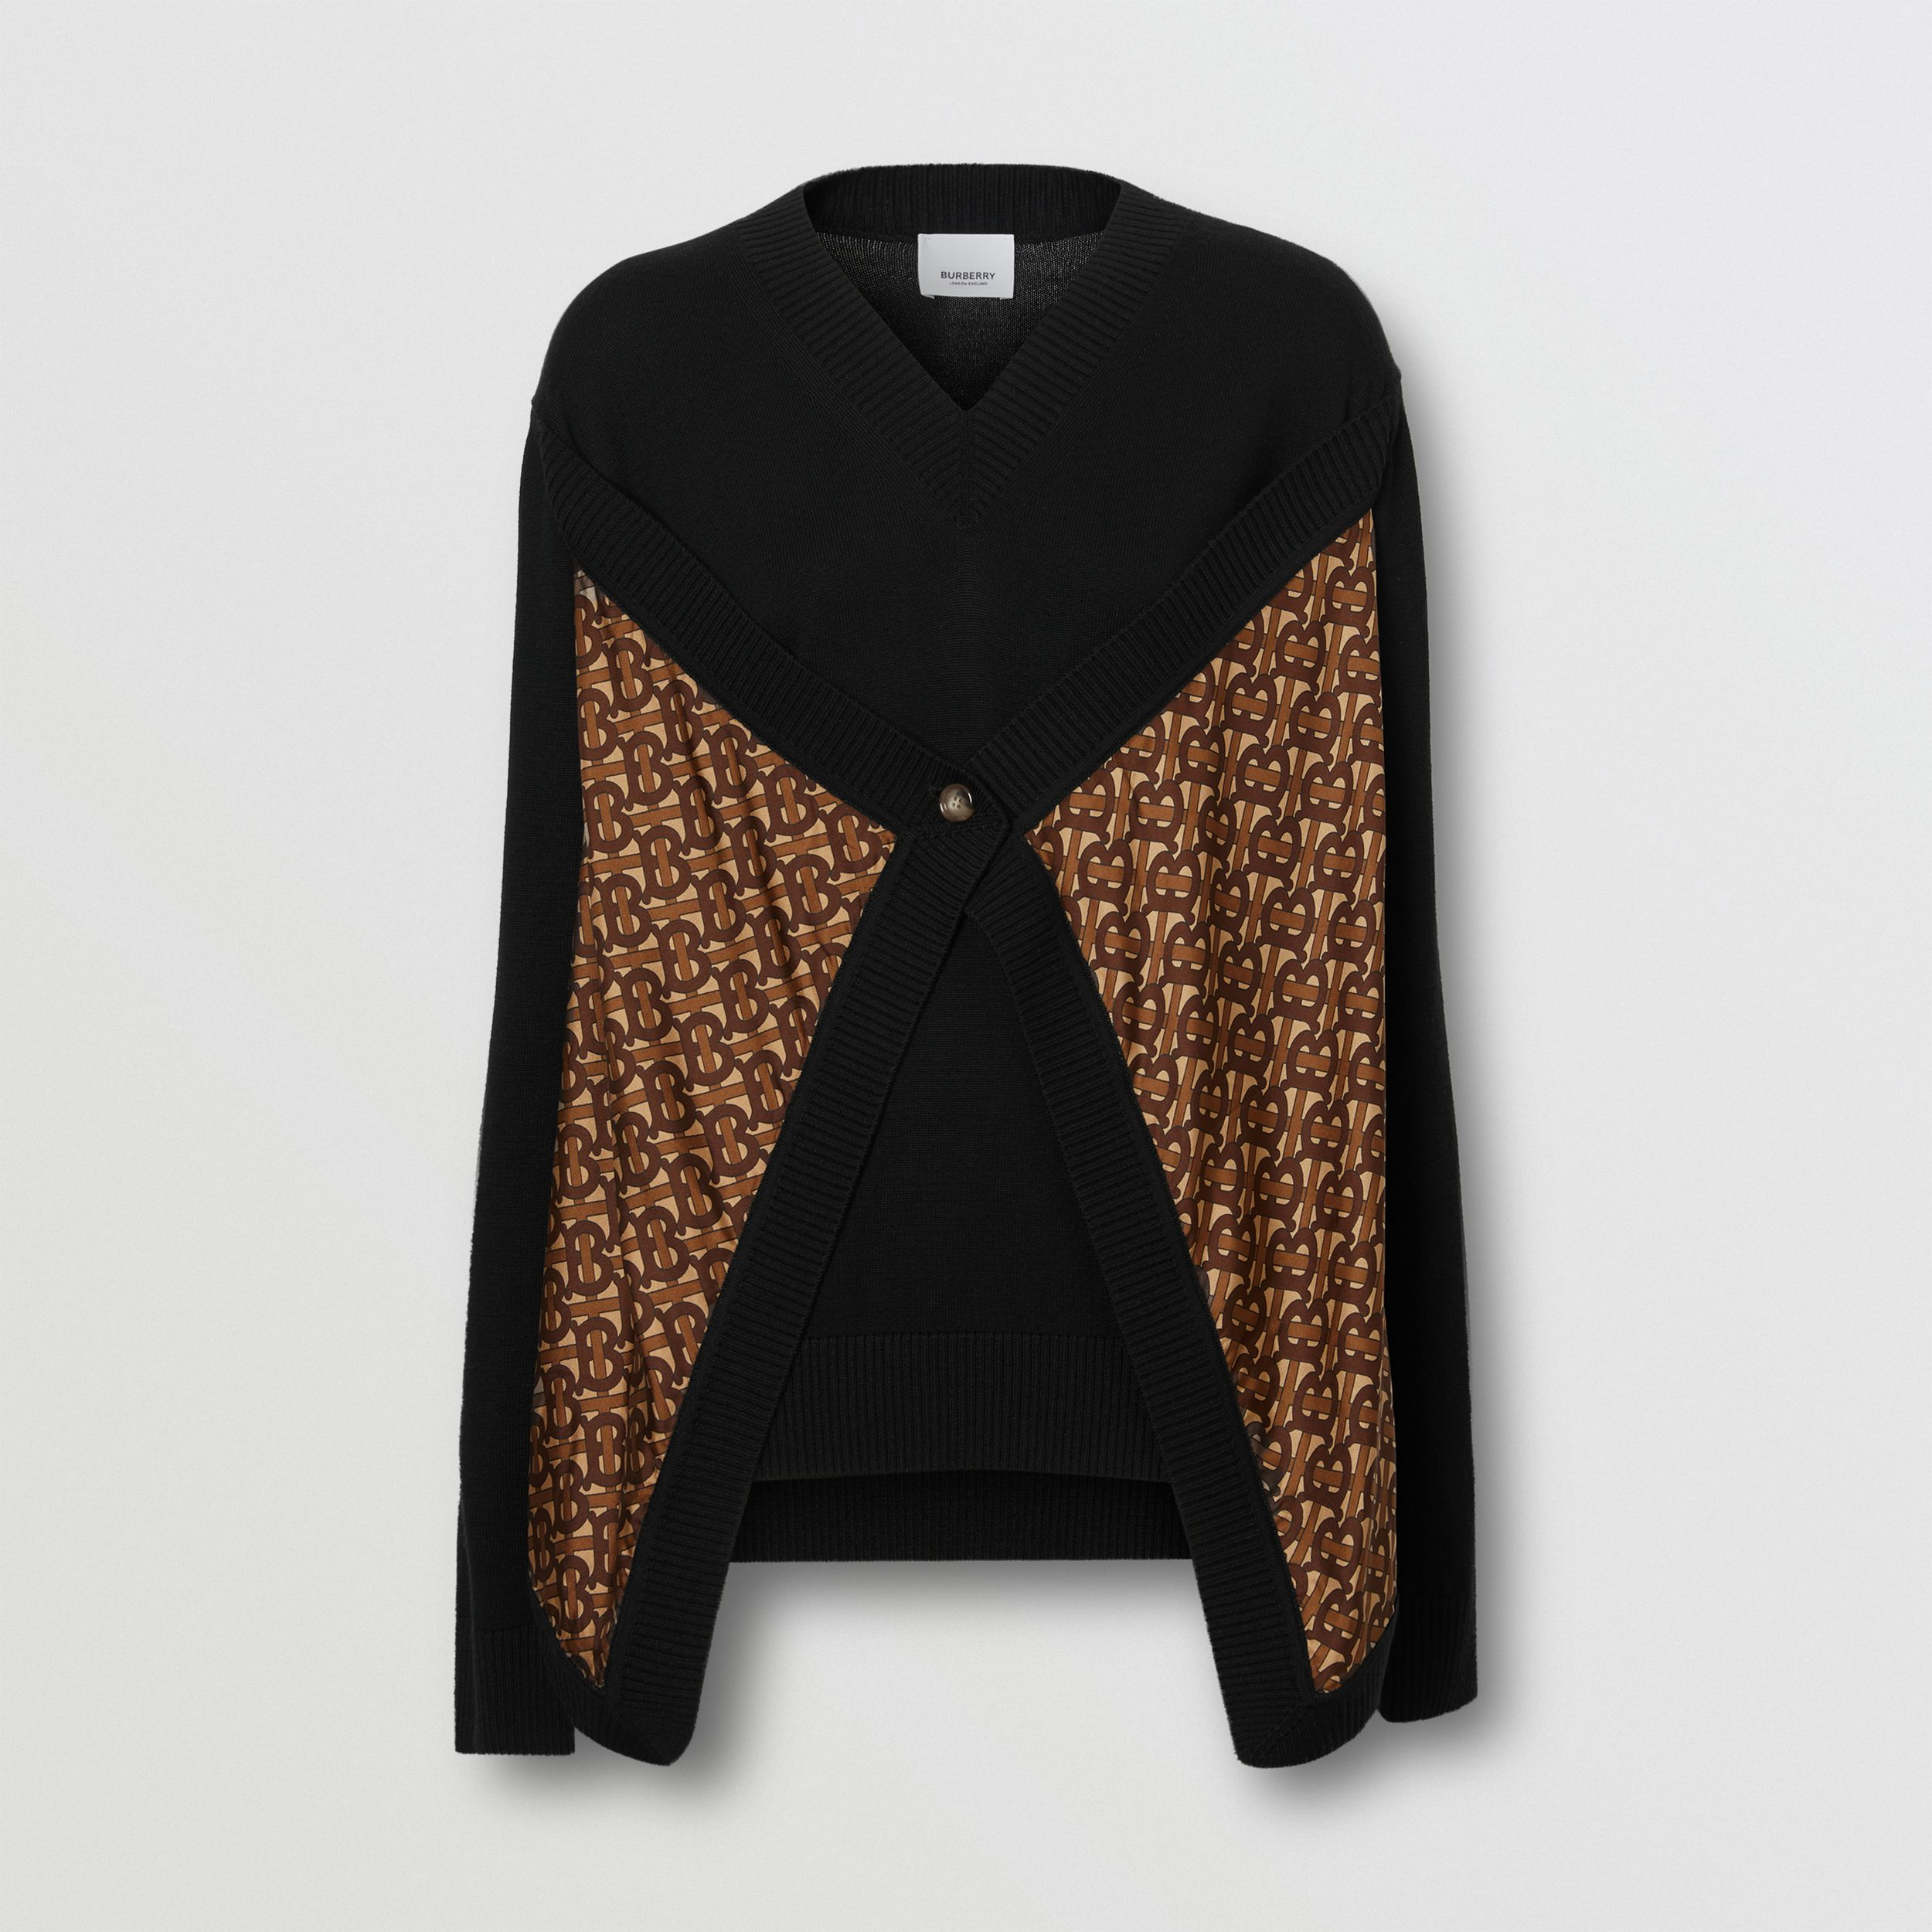 Monogram Print Silk Panel Merino Wool Sweater in Black - Women | Burberry - 4